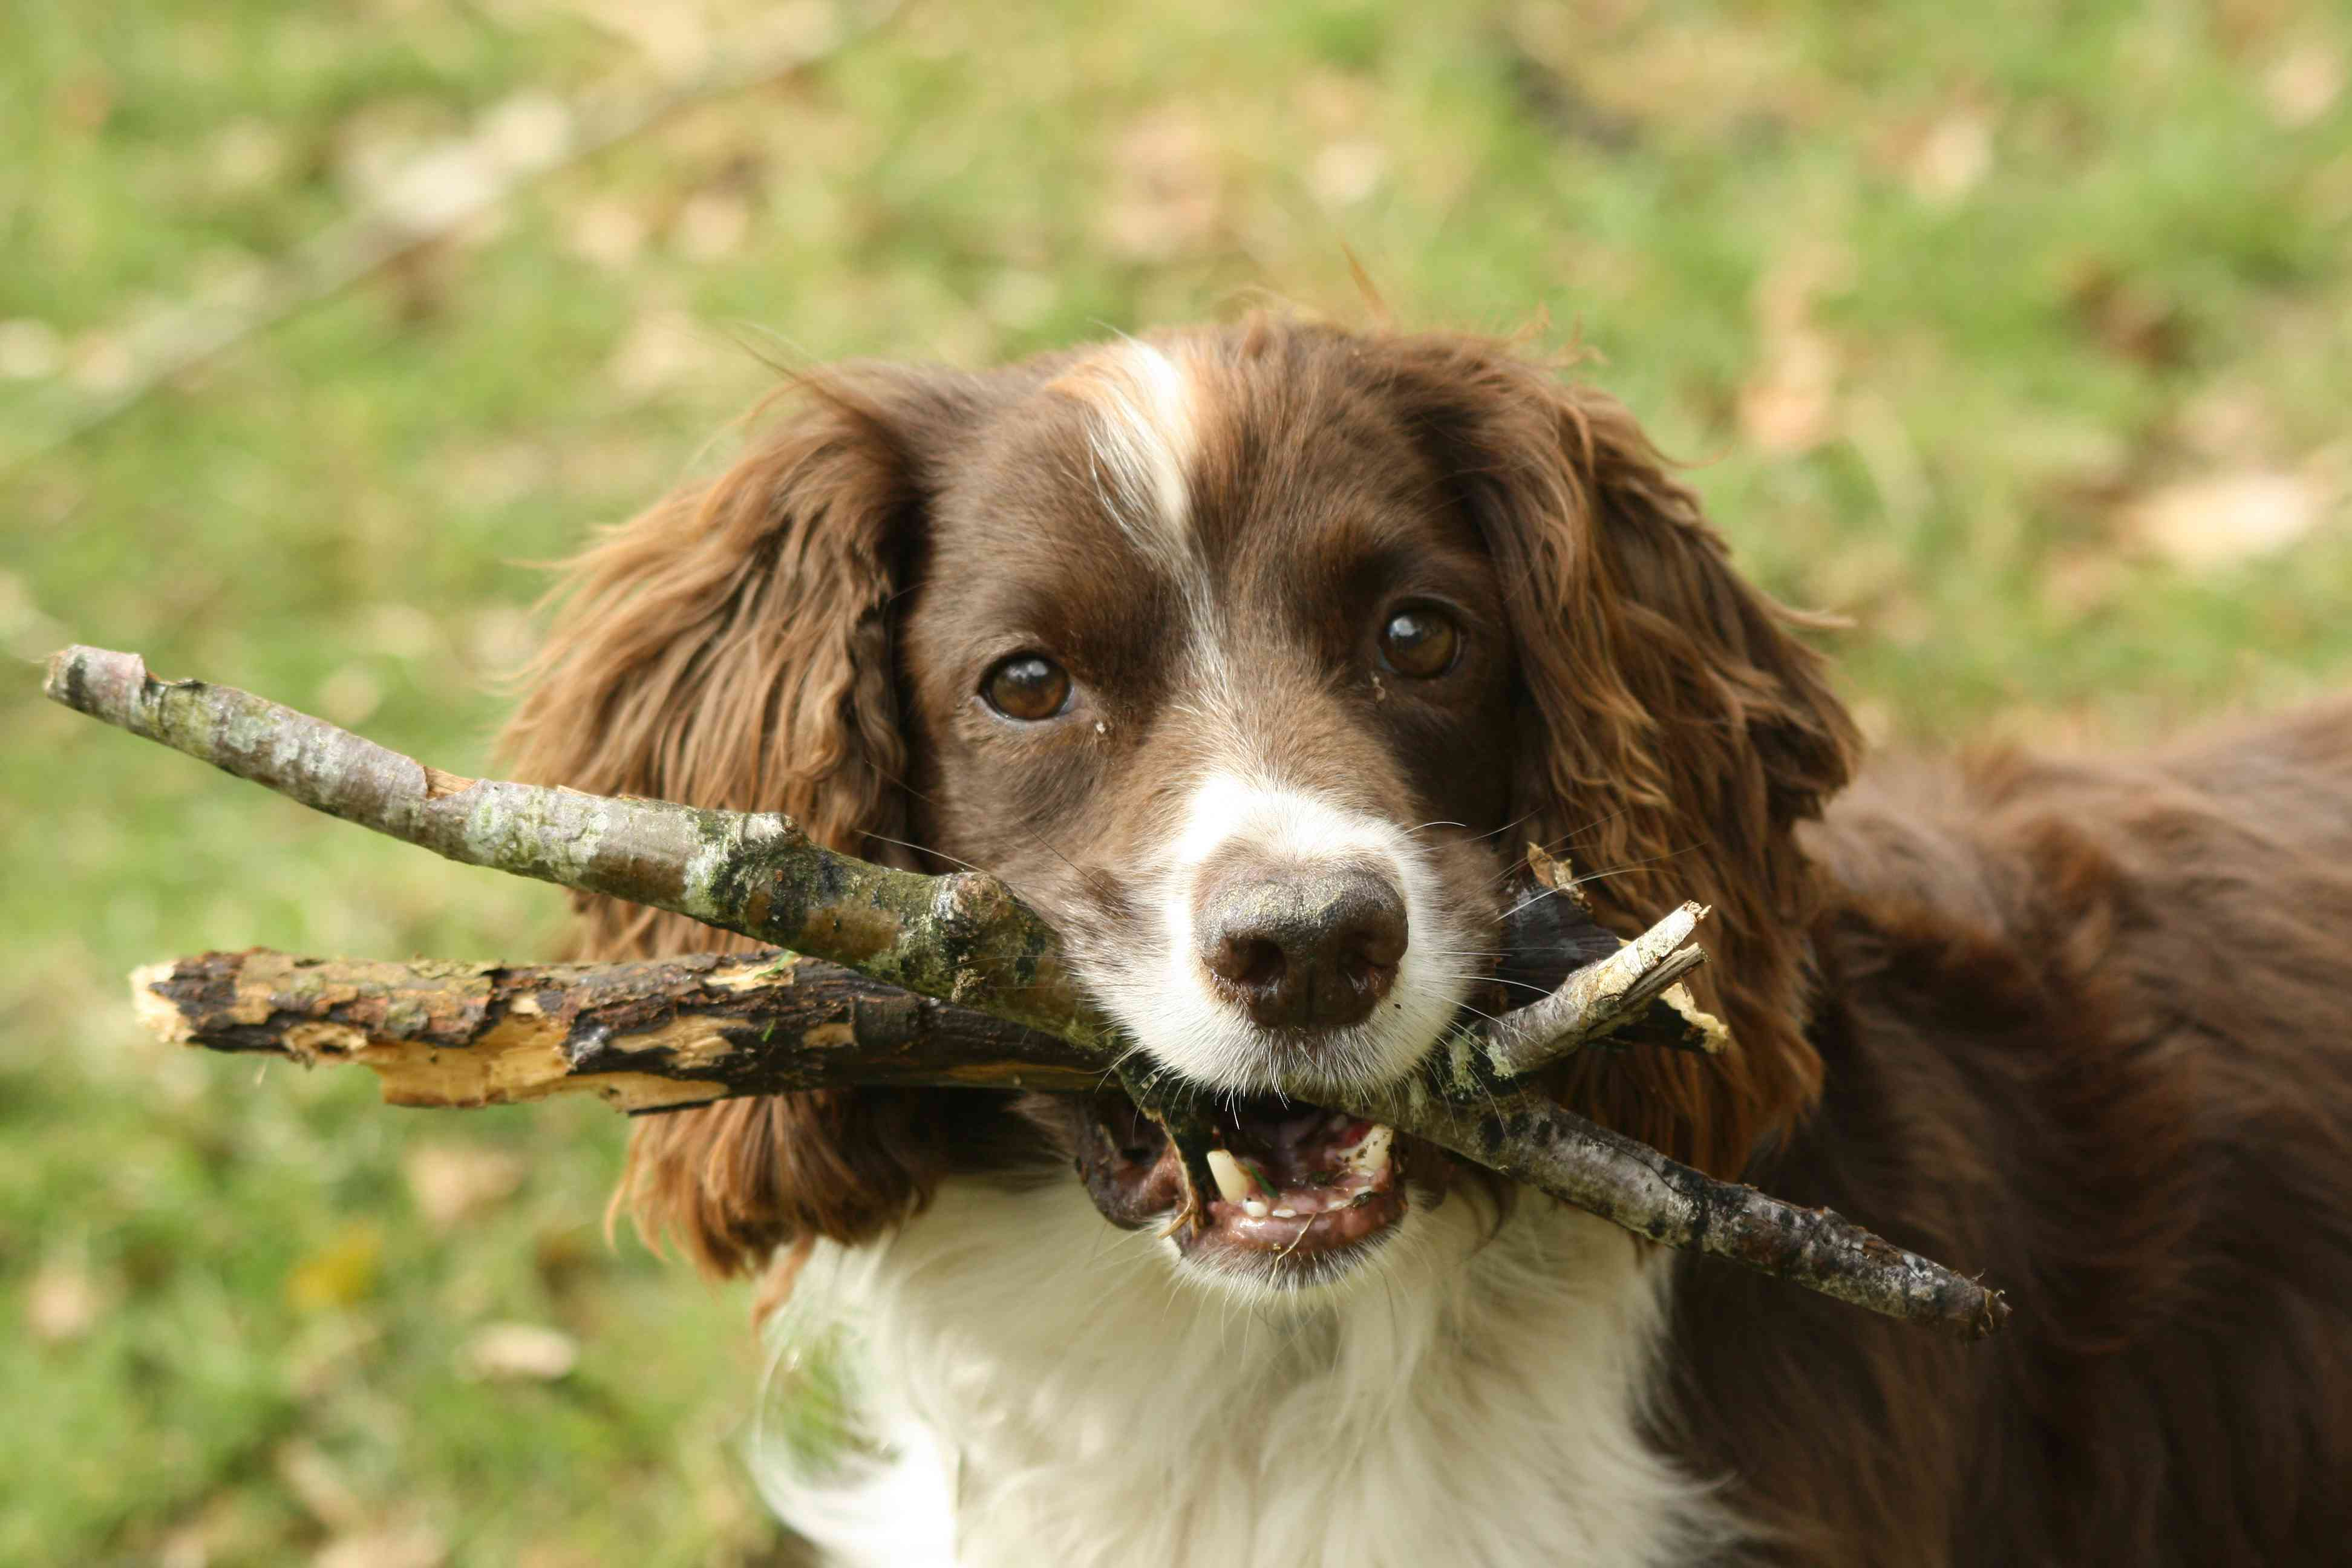 Dog carrying branches in mouth